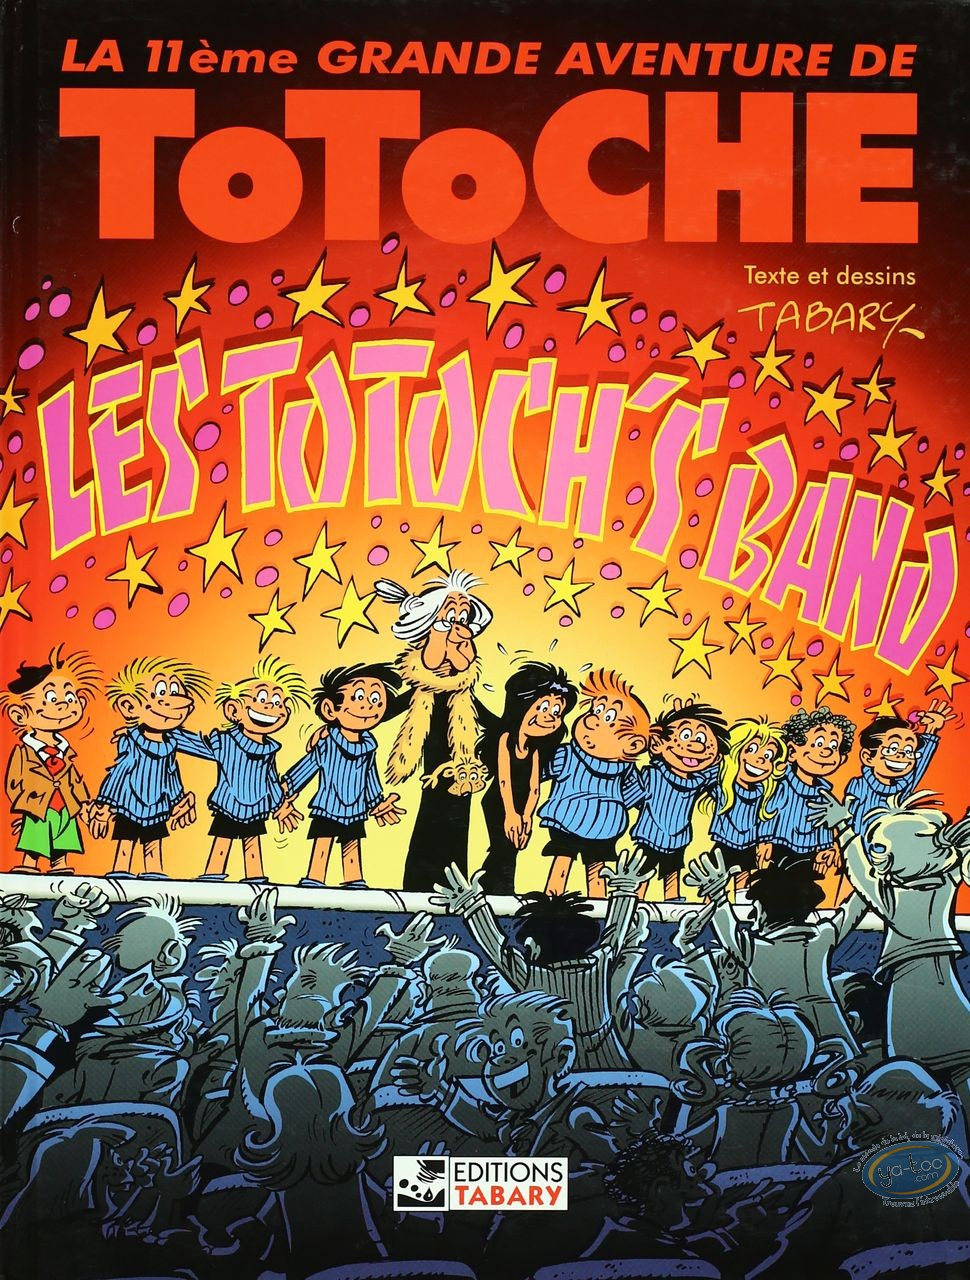 Reduced price European comic books, Totoche : The Totoch's band - The great adventures of Totoche Volume 11